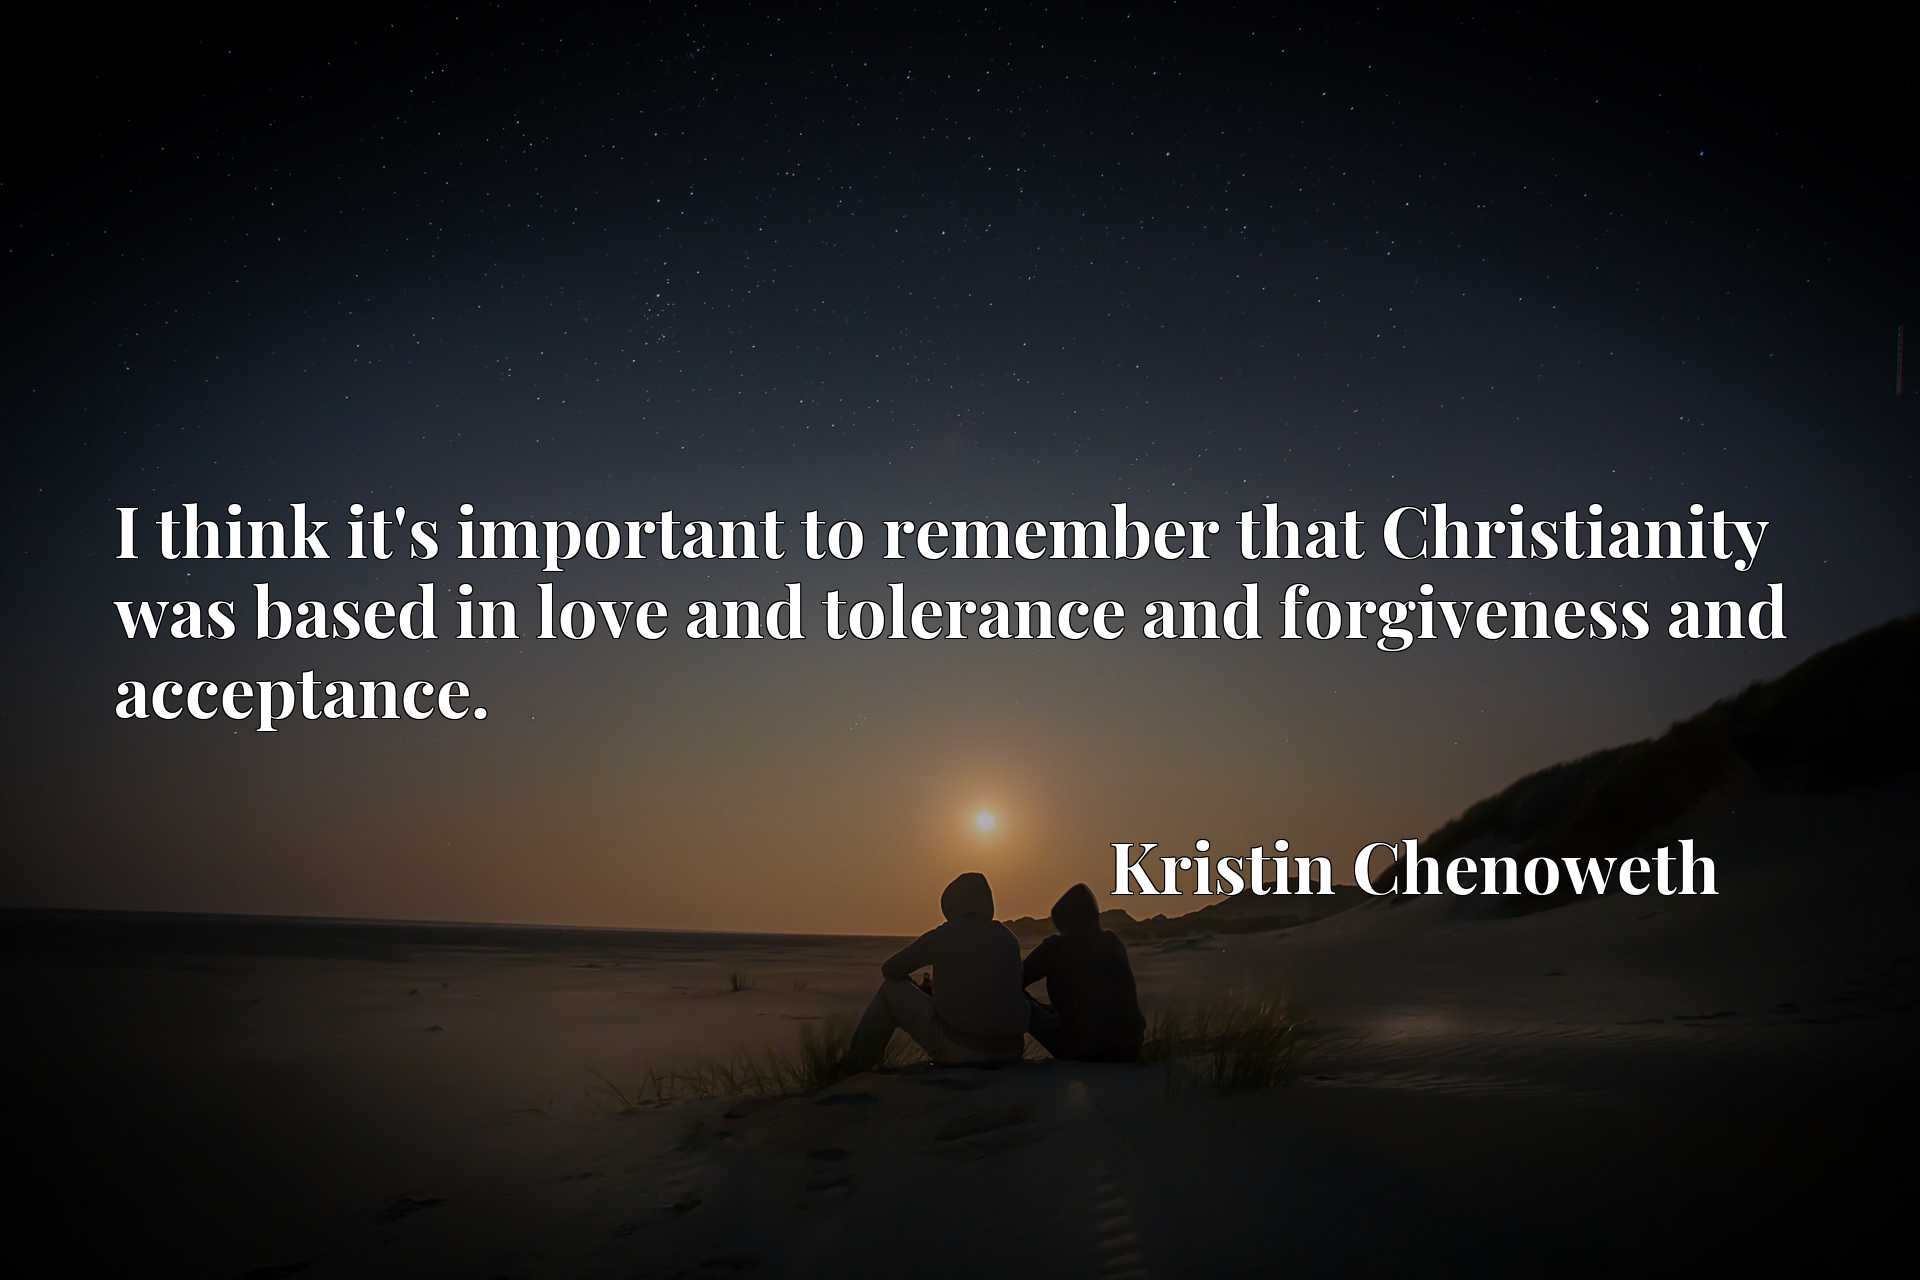 I think it's important to remember that Christianity was based in love and tolerance and forgiveness and acceptance.